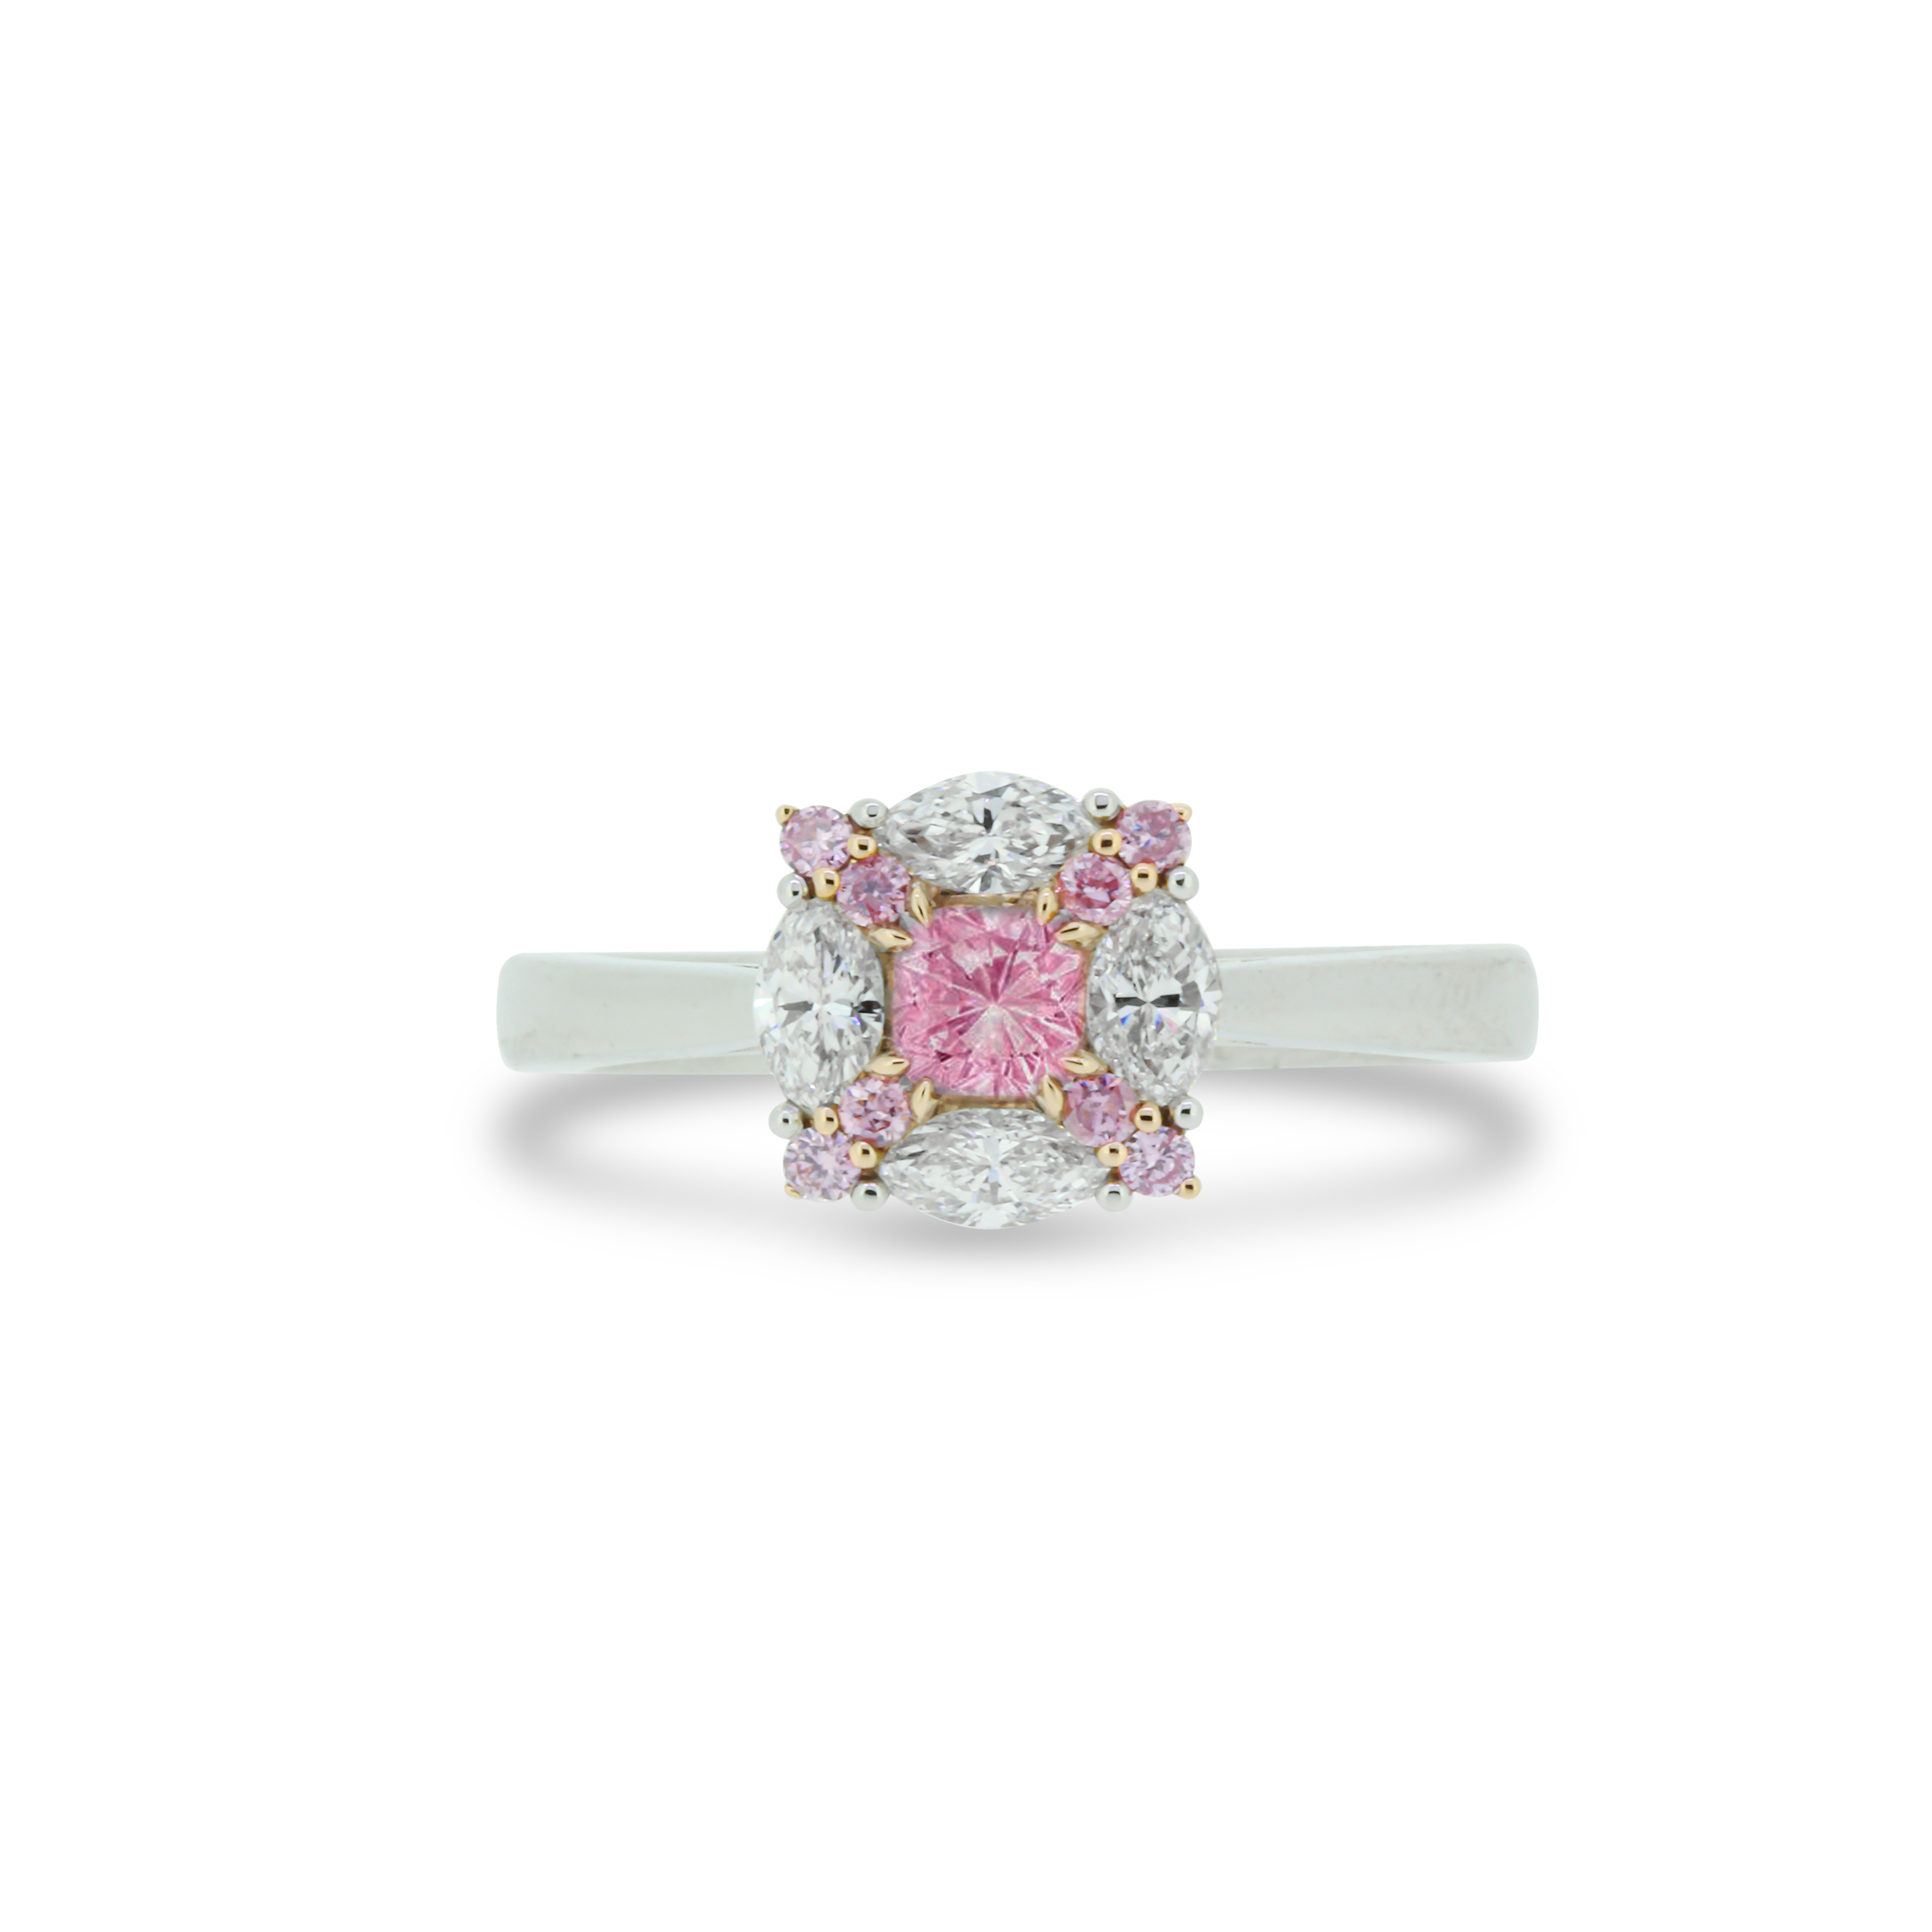 Cushion Cut Fancy Pink Diamond Ring in 18k White and Rose Gold